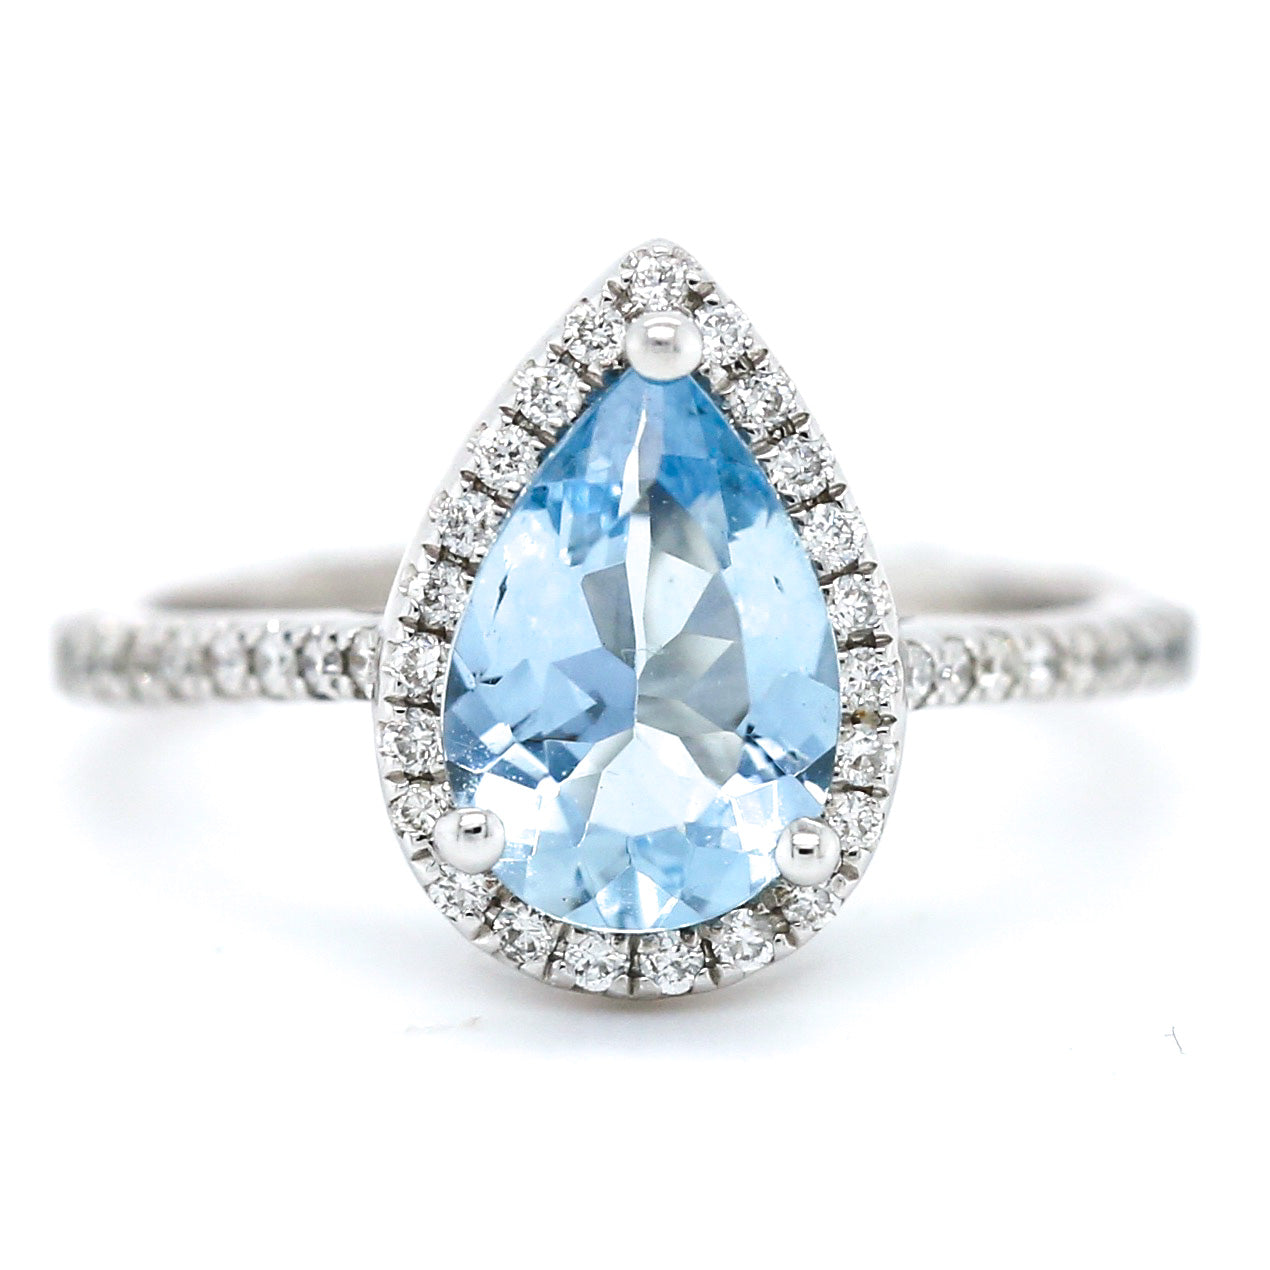 14k white gold aquamarine pear shaped estate ring with diamonds on the band and a matching diamond halo